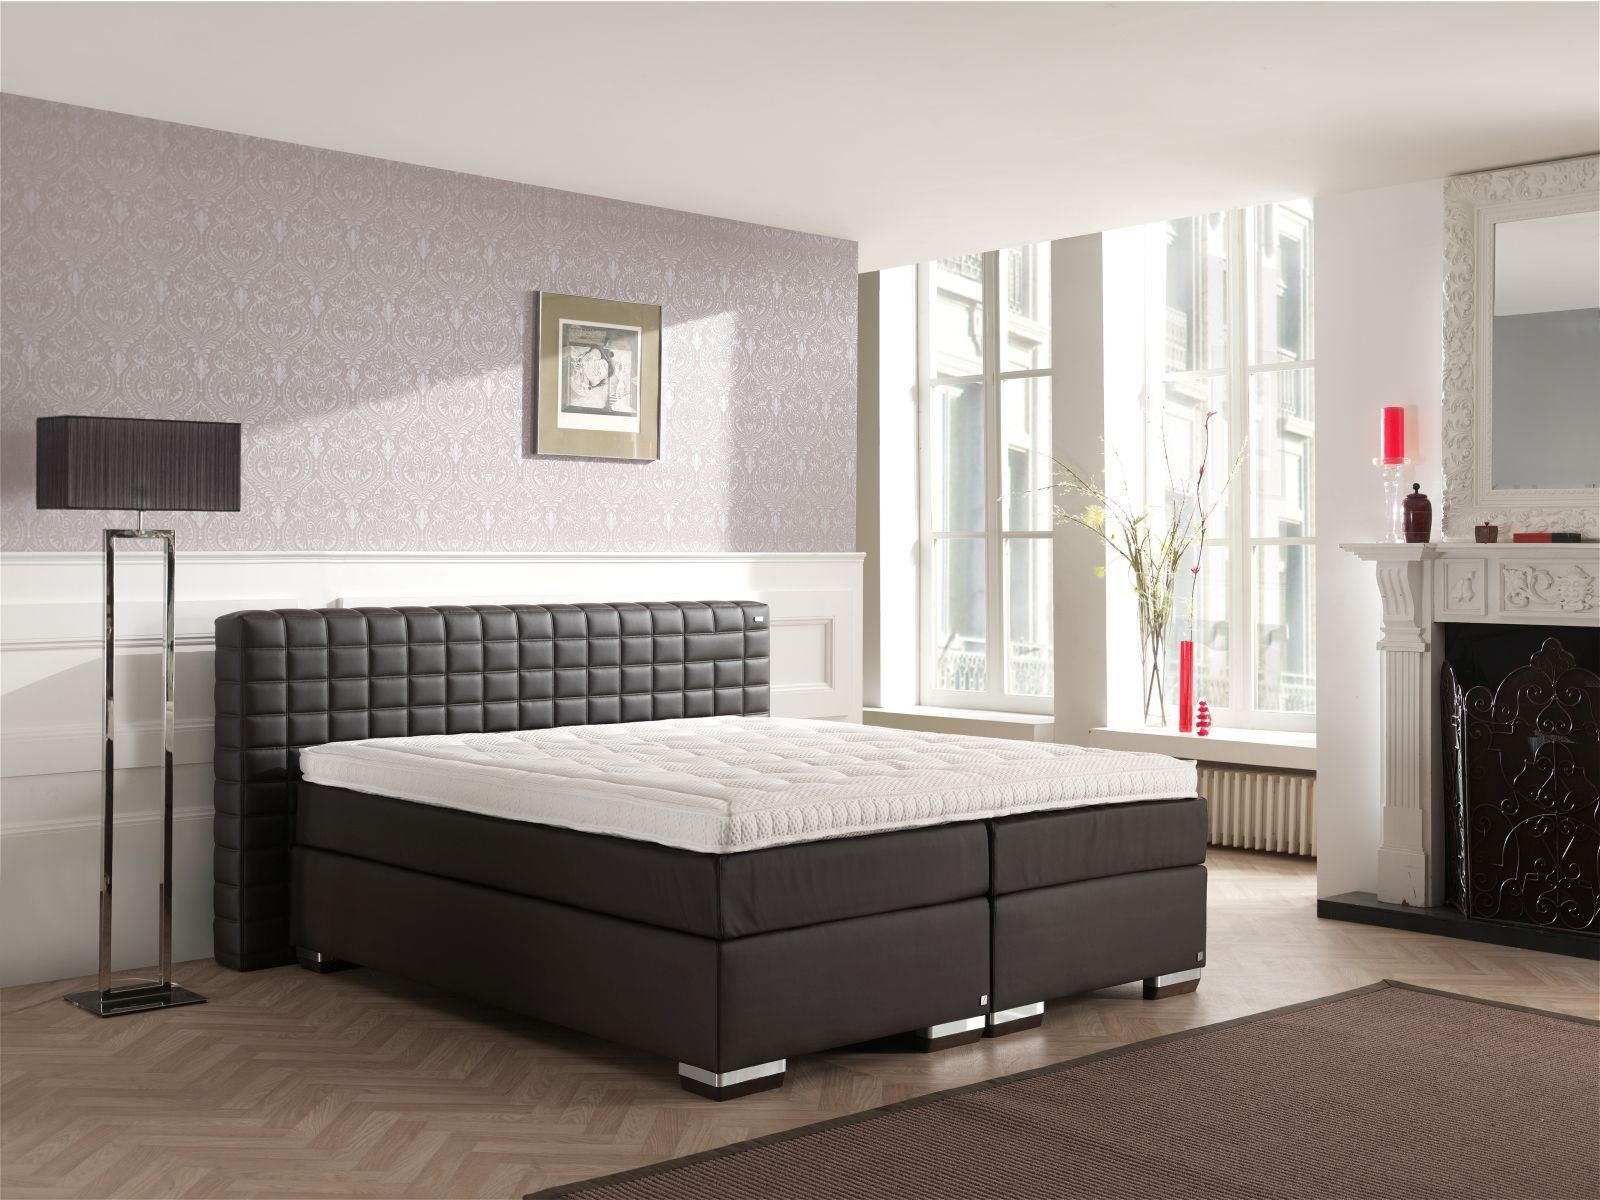 hotelbett luxus boxspringbett komplettes bett brixton kopfteil gesteppt farbwahl ebay. Black Bedroom Furniture Sets. Home Design Ideas